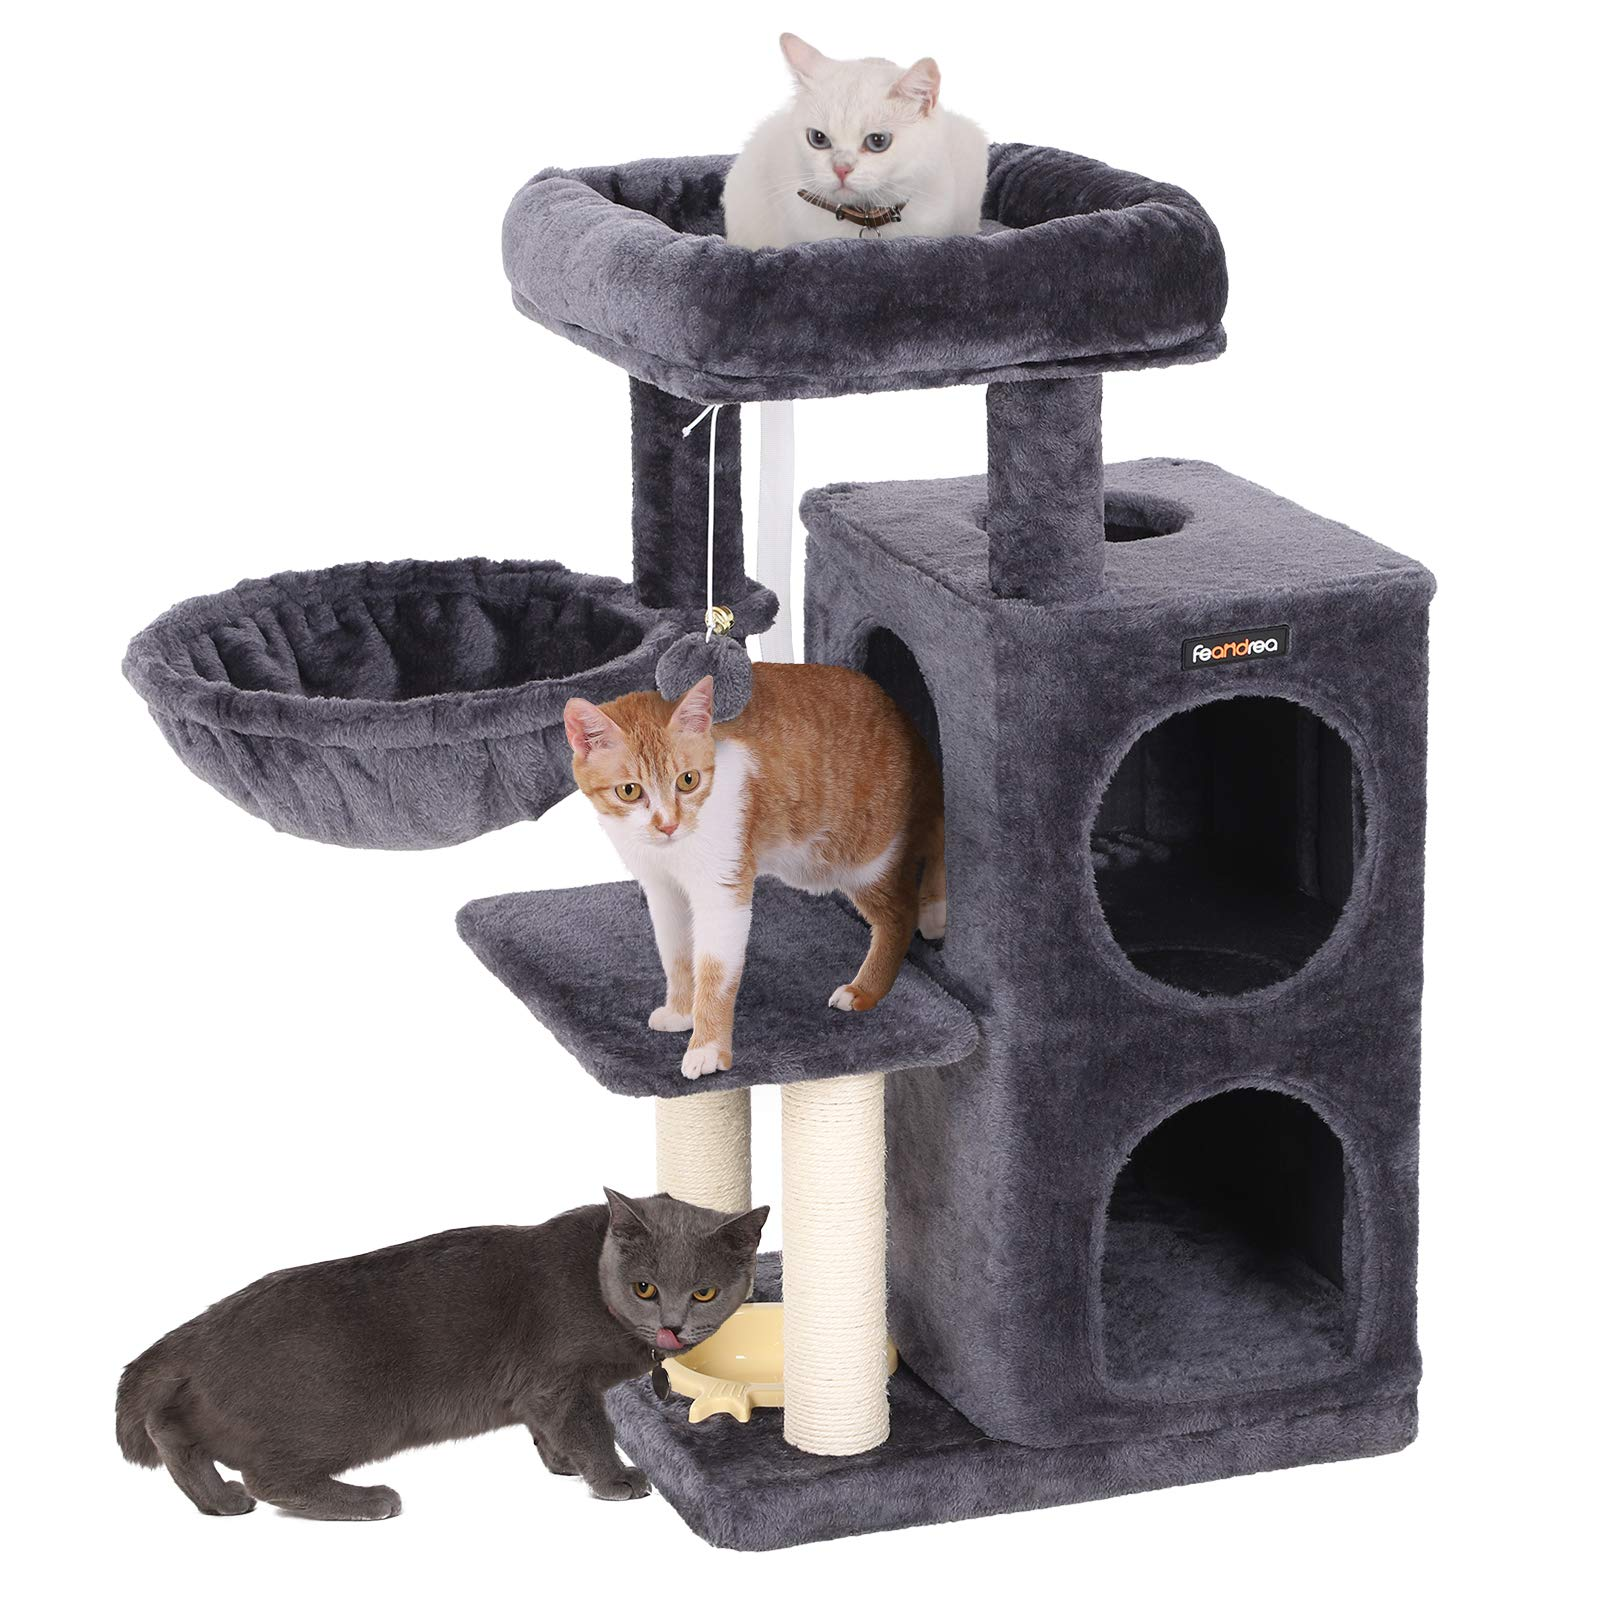 FEANDREA SONGMICS Multi-Level Cat Tree with Feeder Bowl, Sisal-Covered Scratching Posts, Dual Condo, Activity Centre Cat Tower Furniture, Smoky Grey UPCT57G by FEANDREA